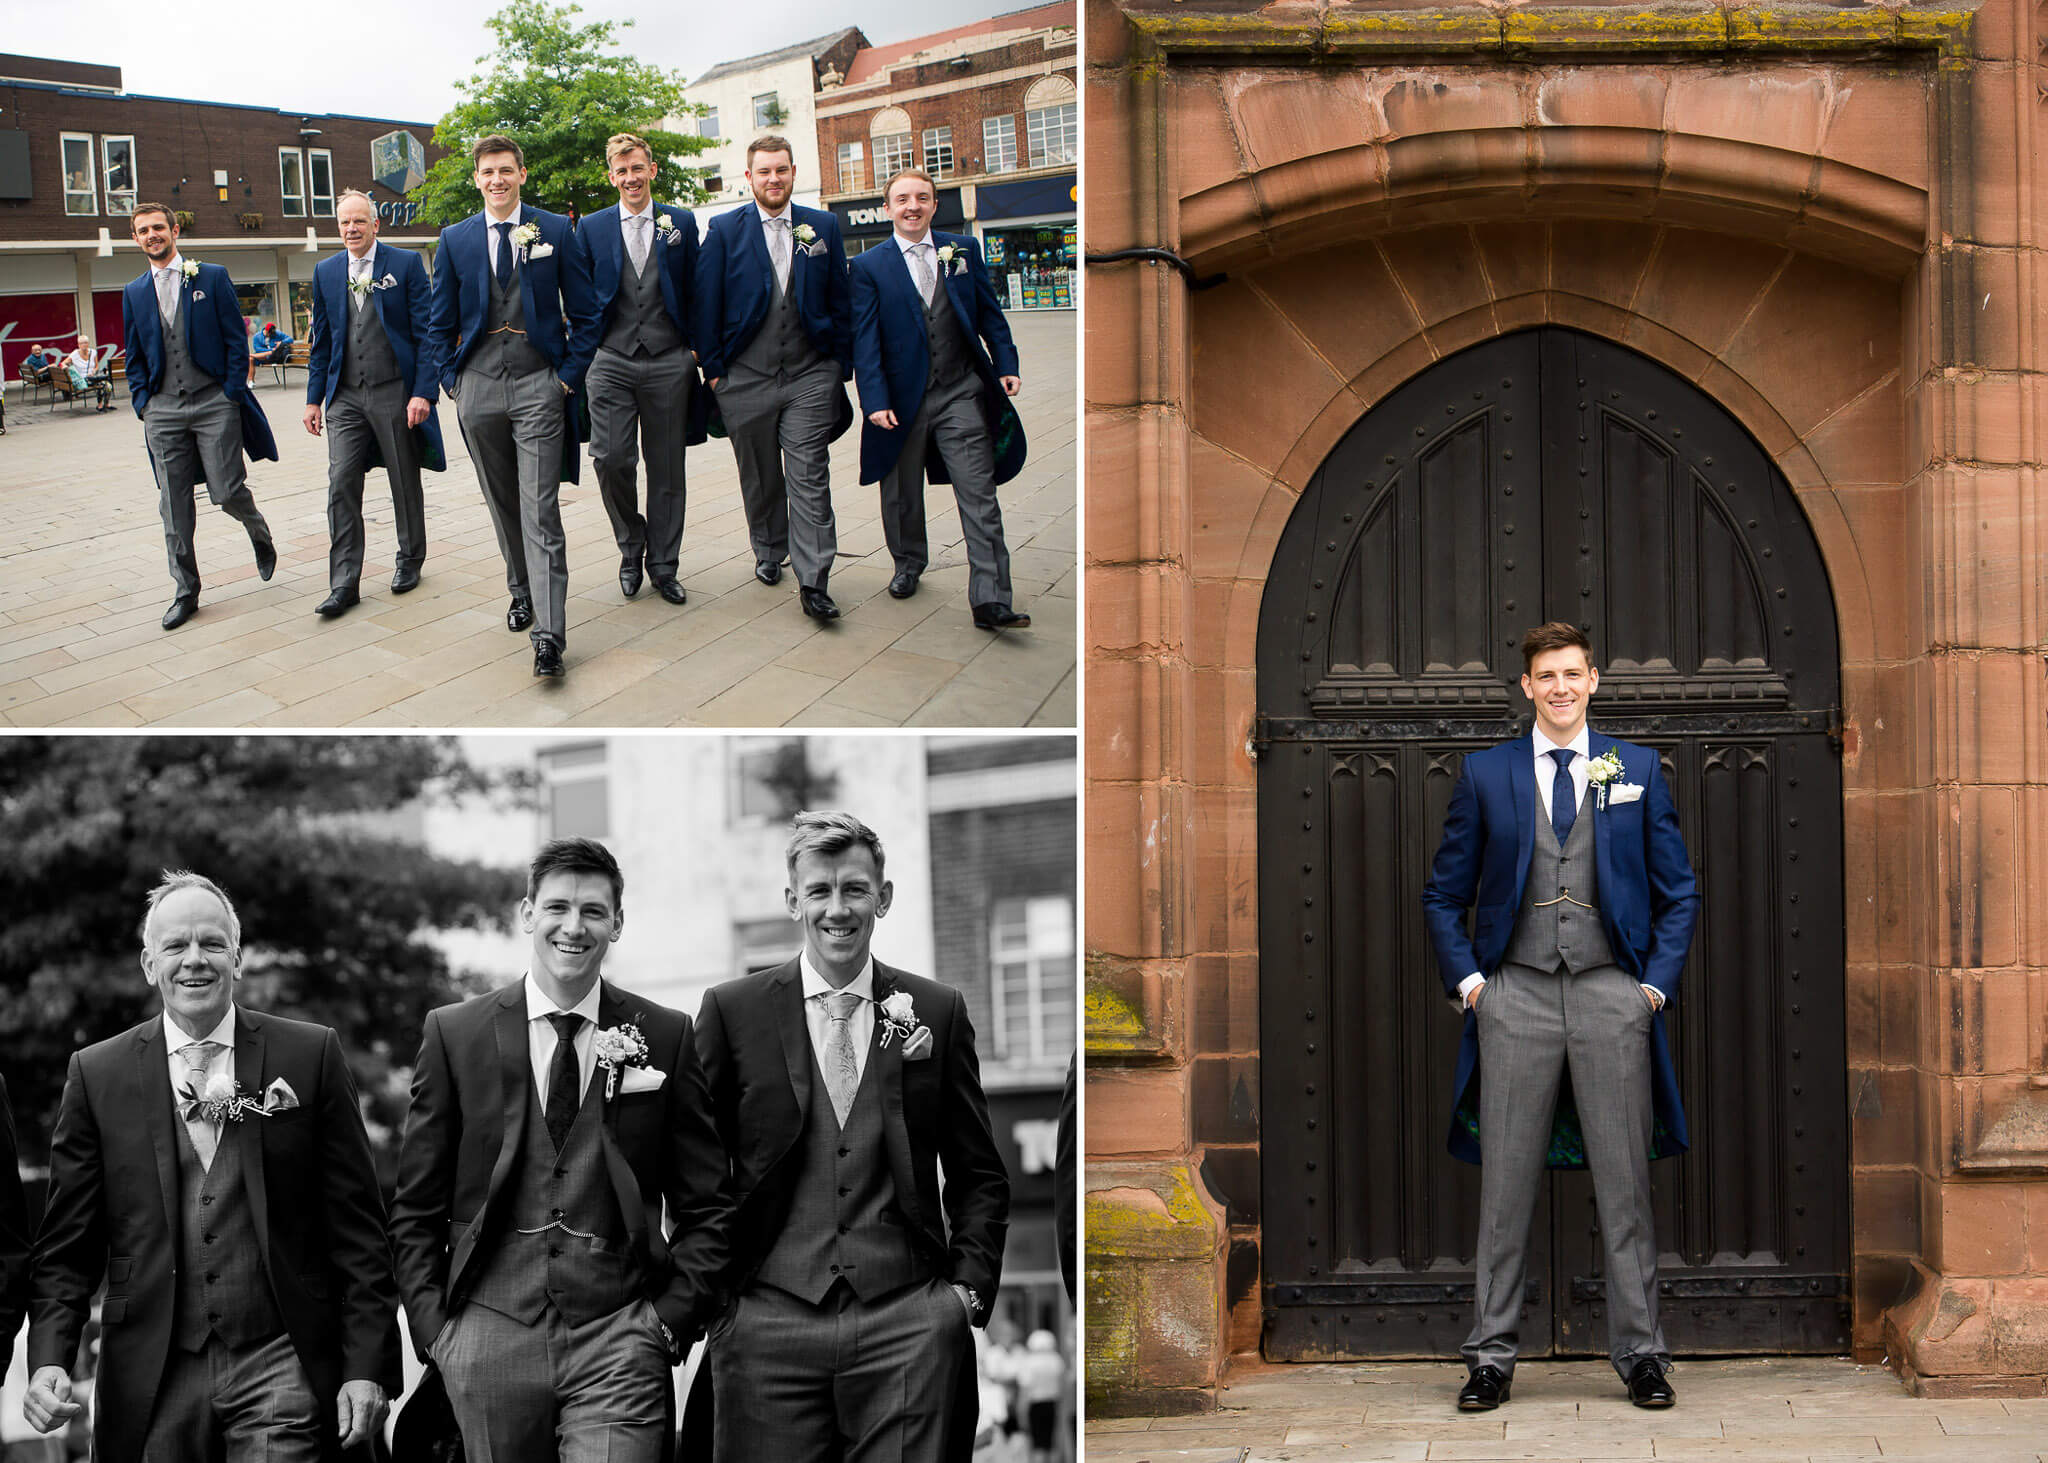 knowsley-hall-wedding-photographer-stanbury-photography